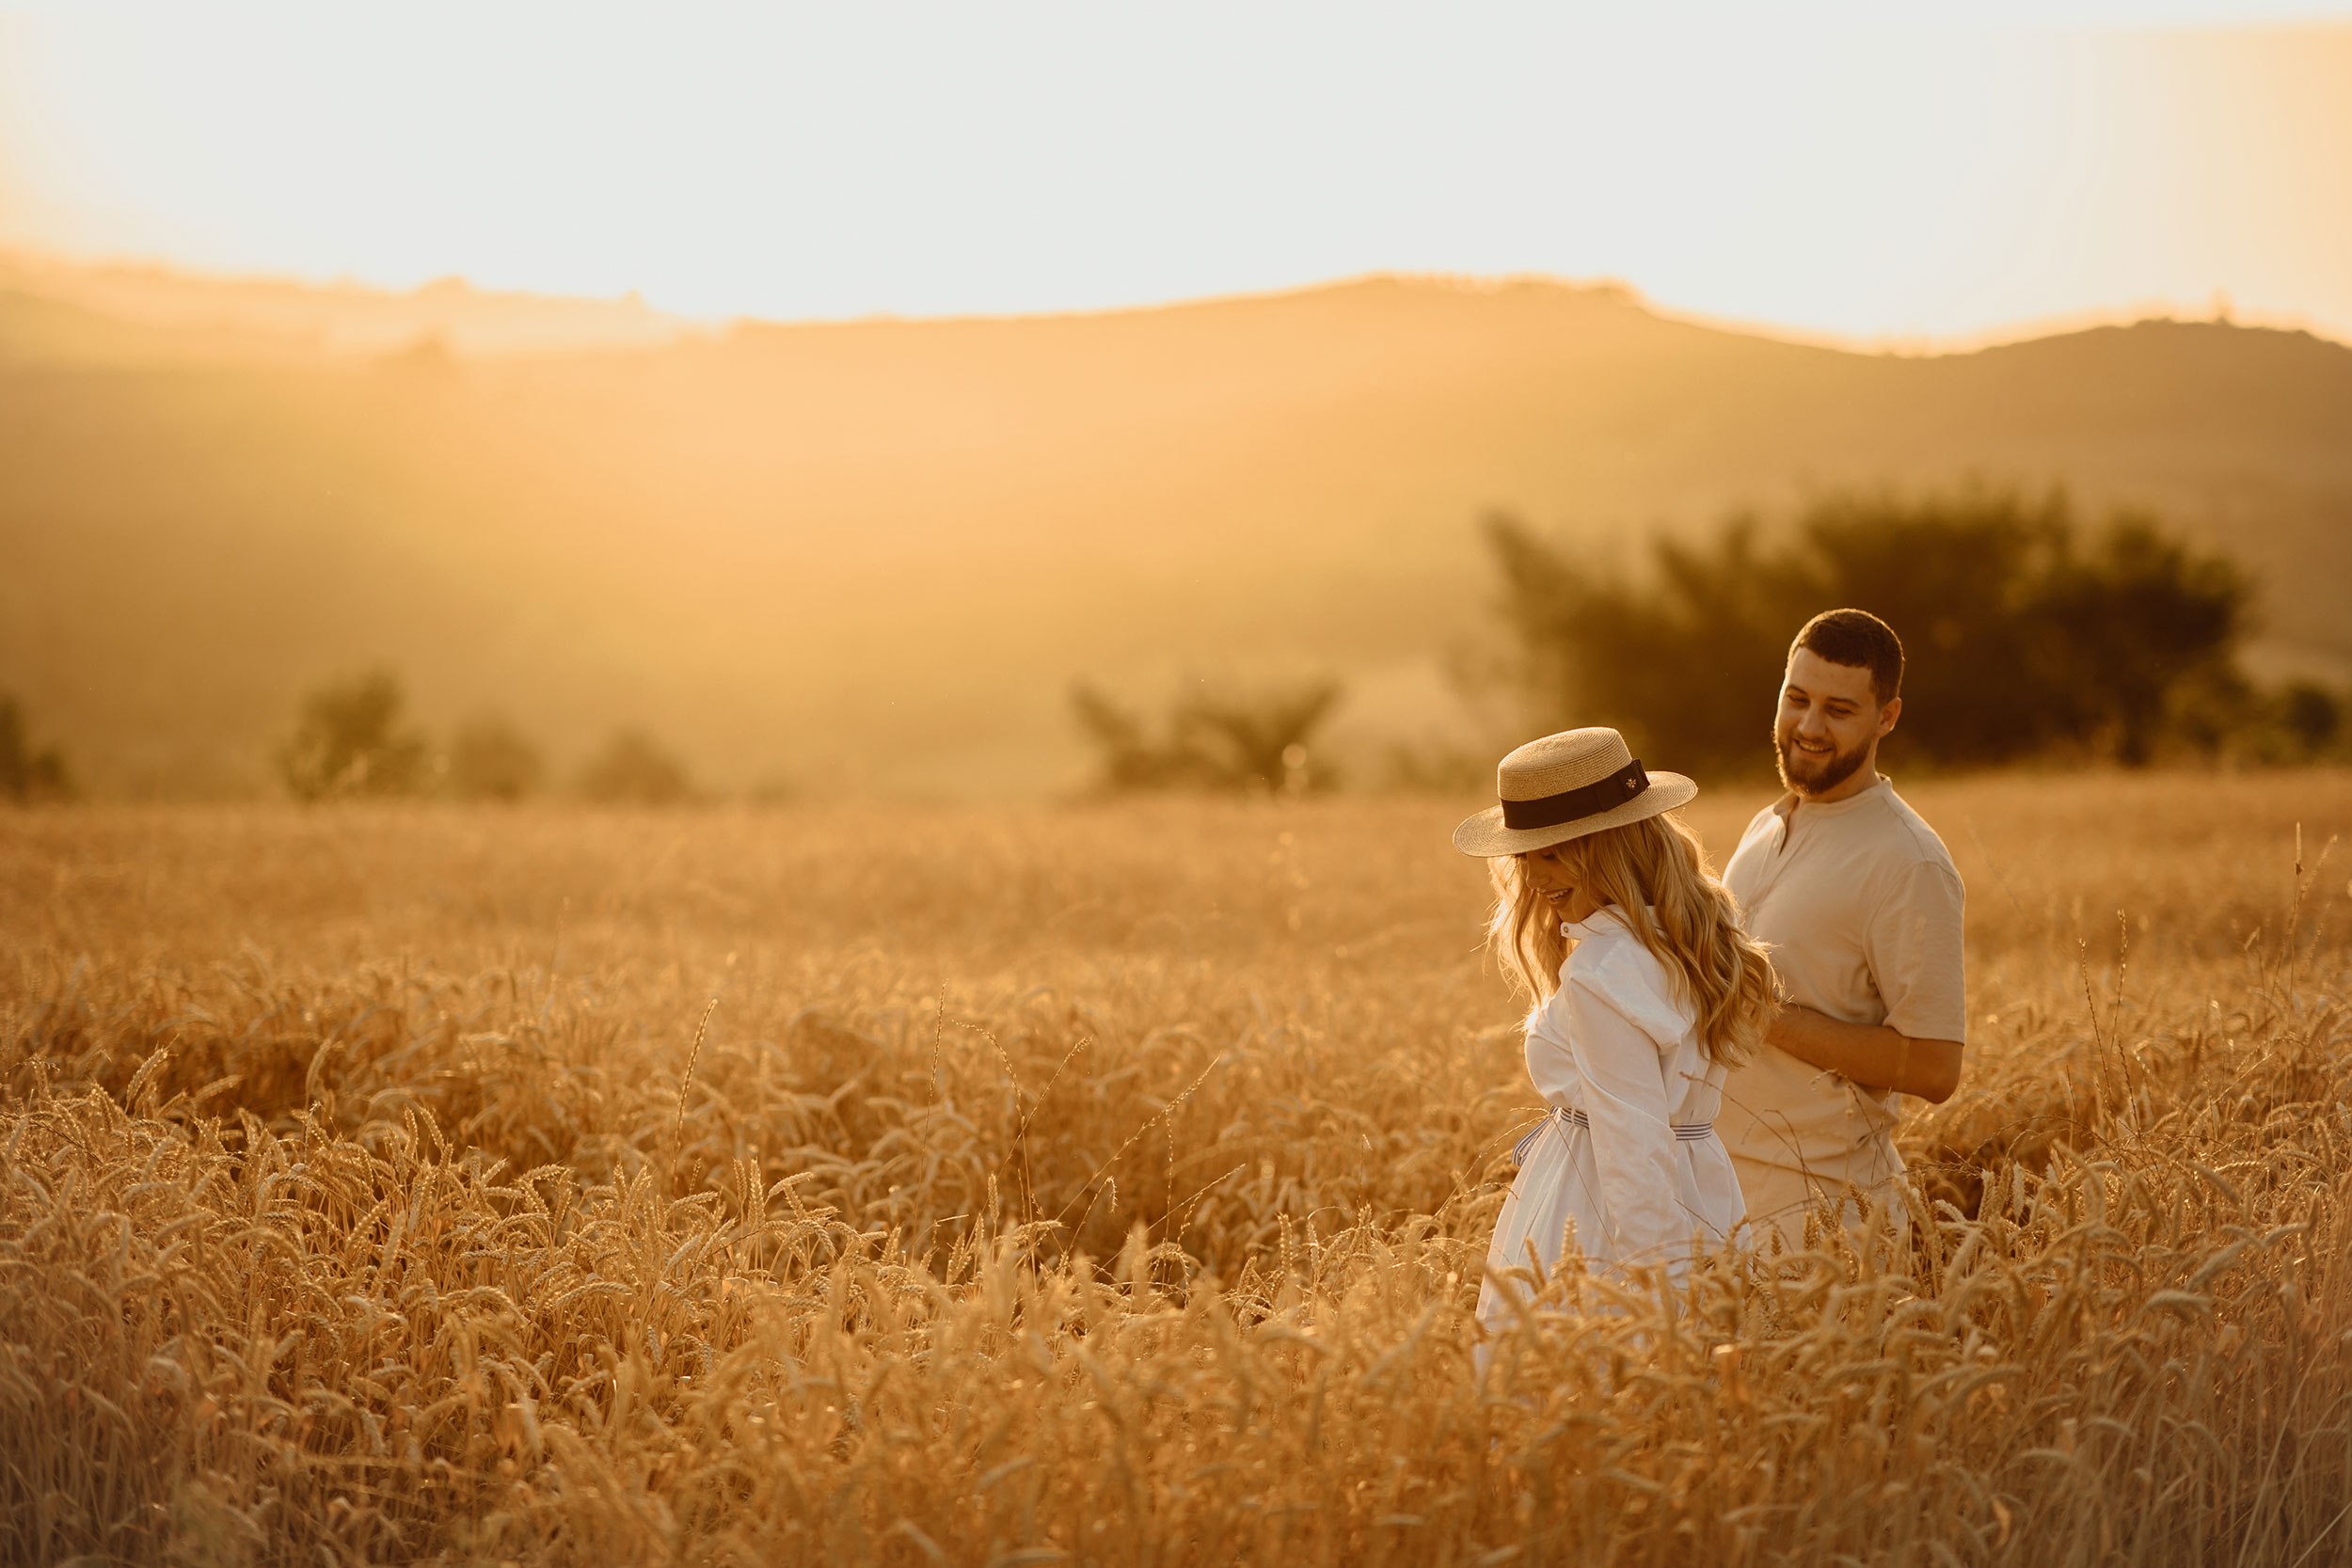 Couple's nature photoshoot during golden hour